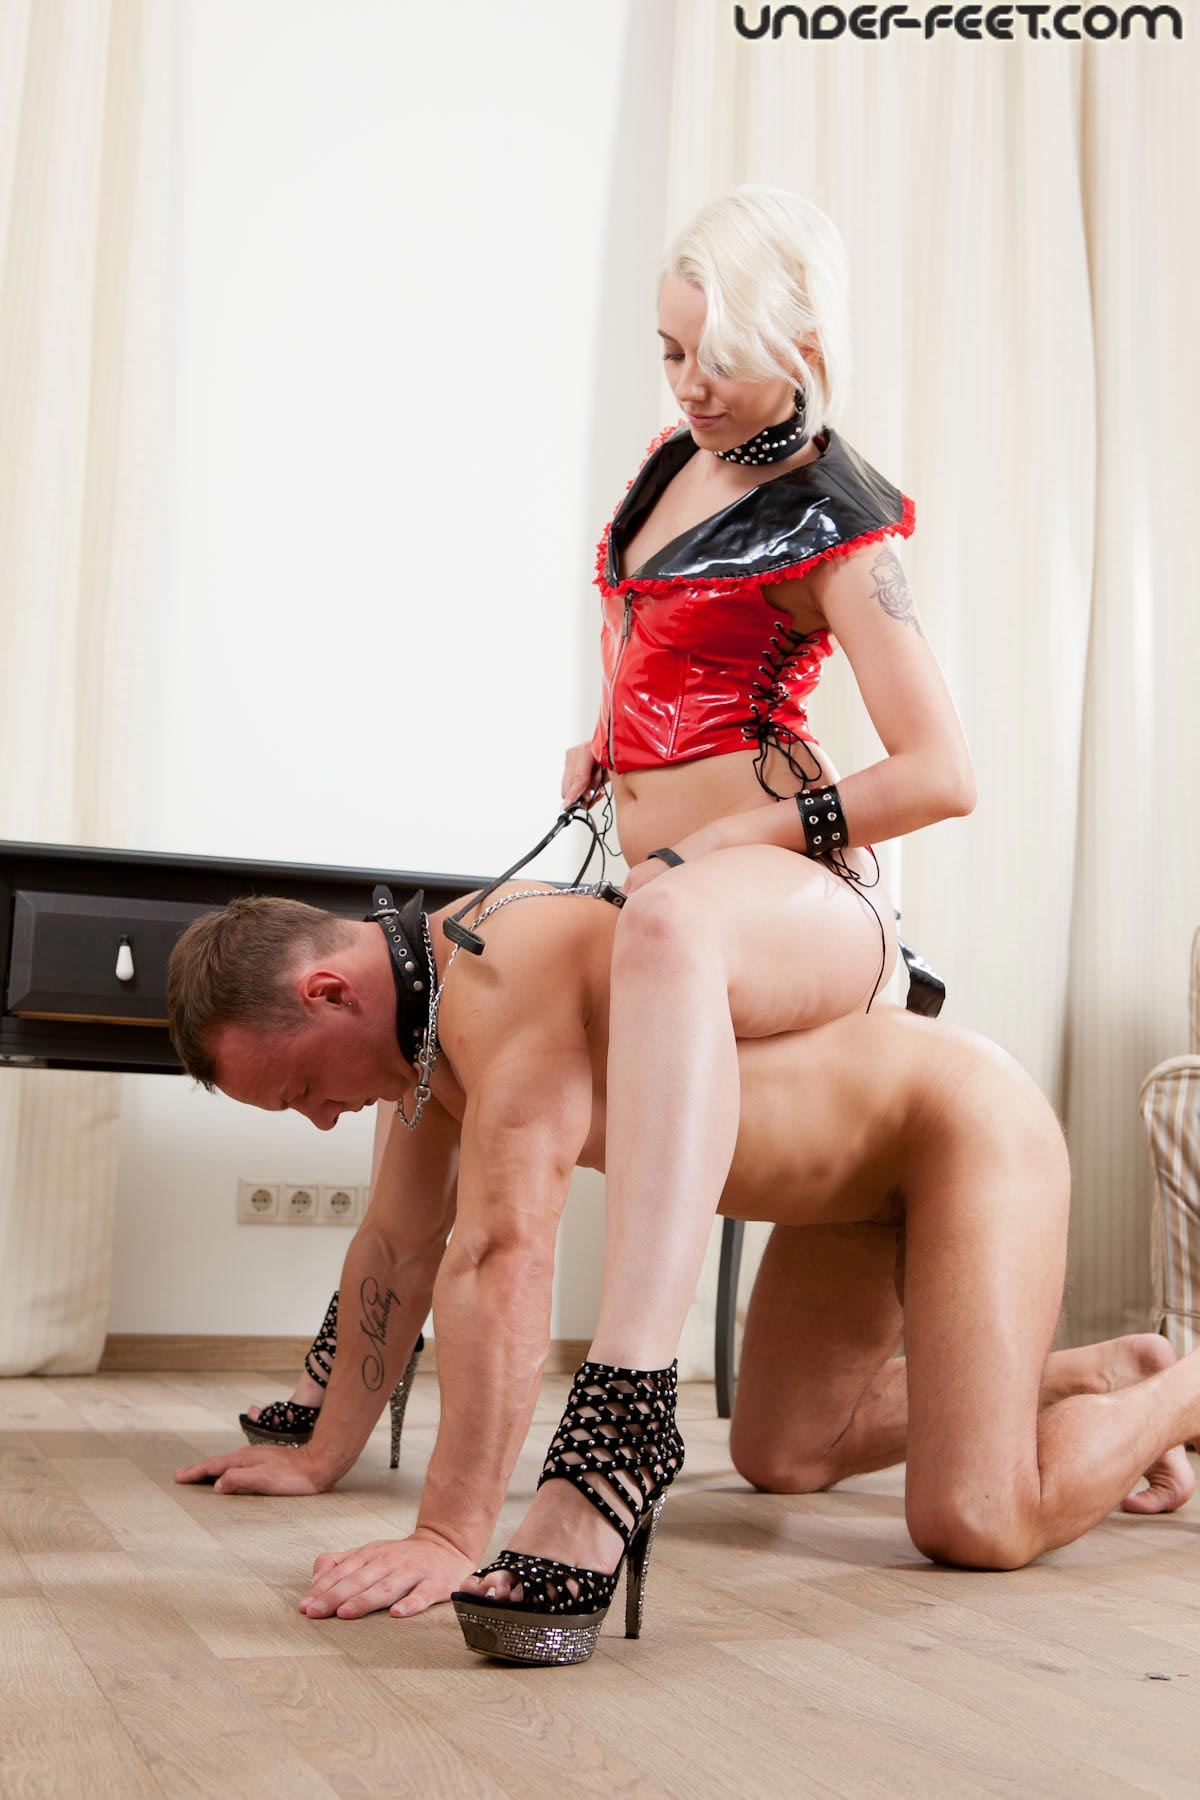 Dominatrix castration celebrity high heels